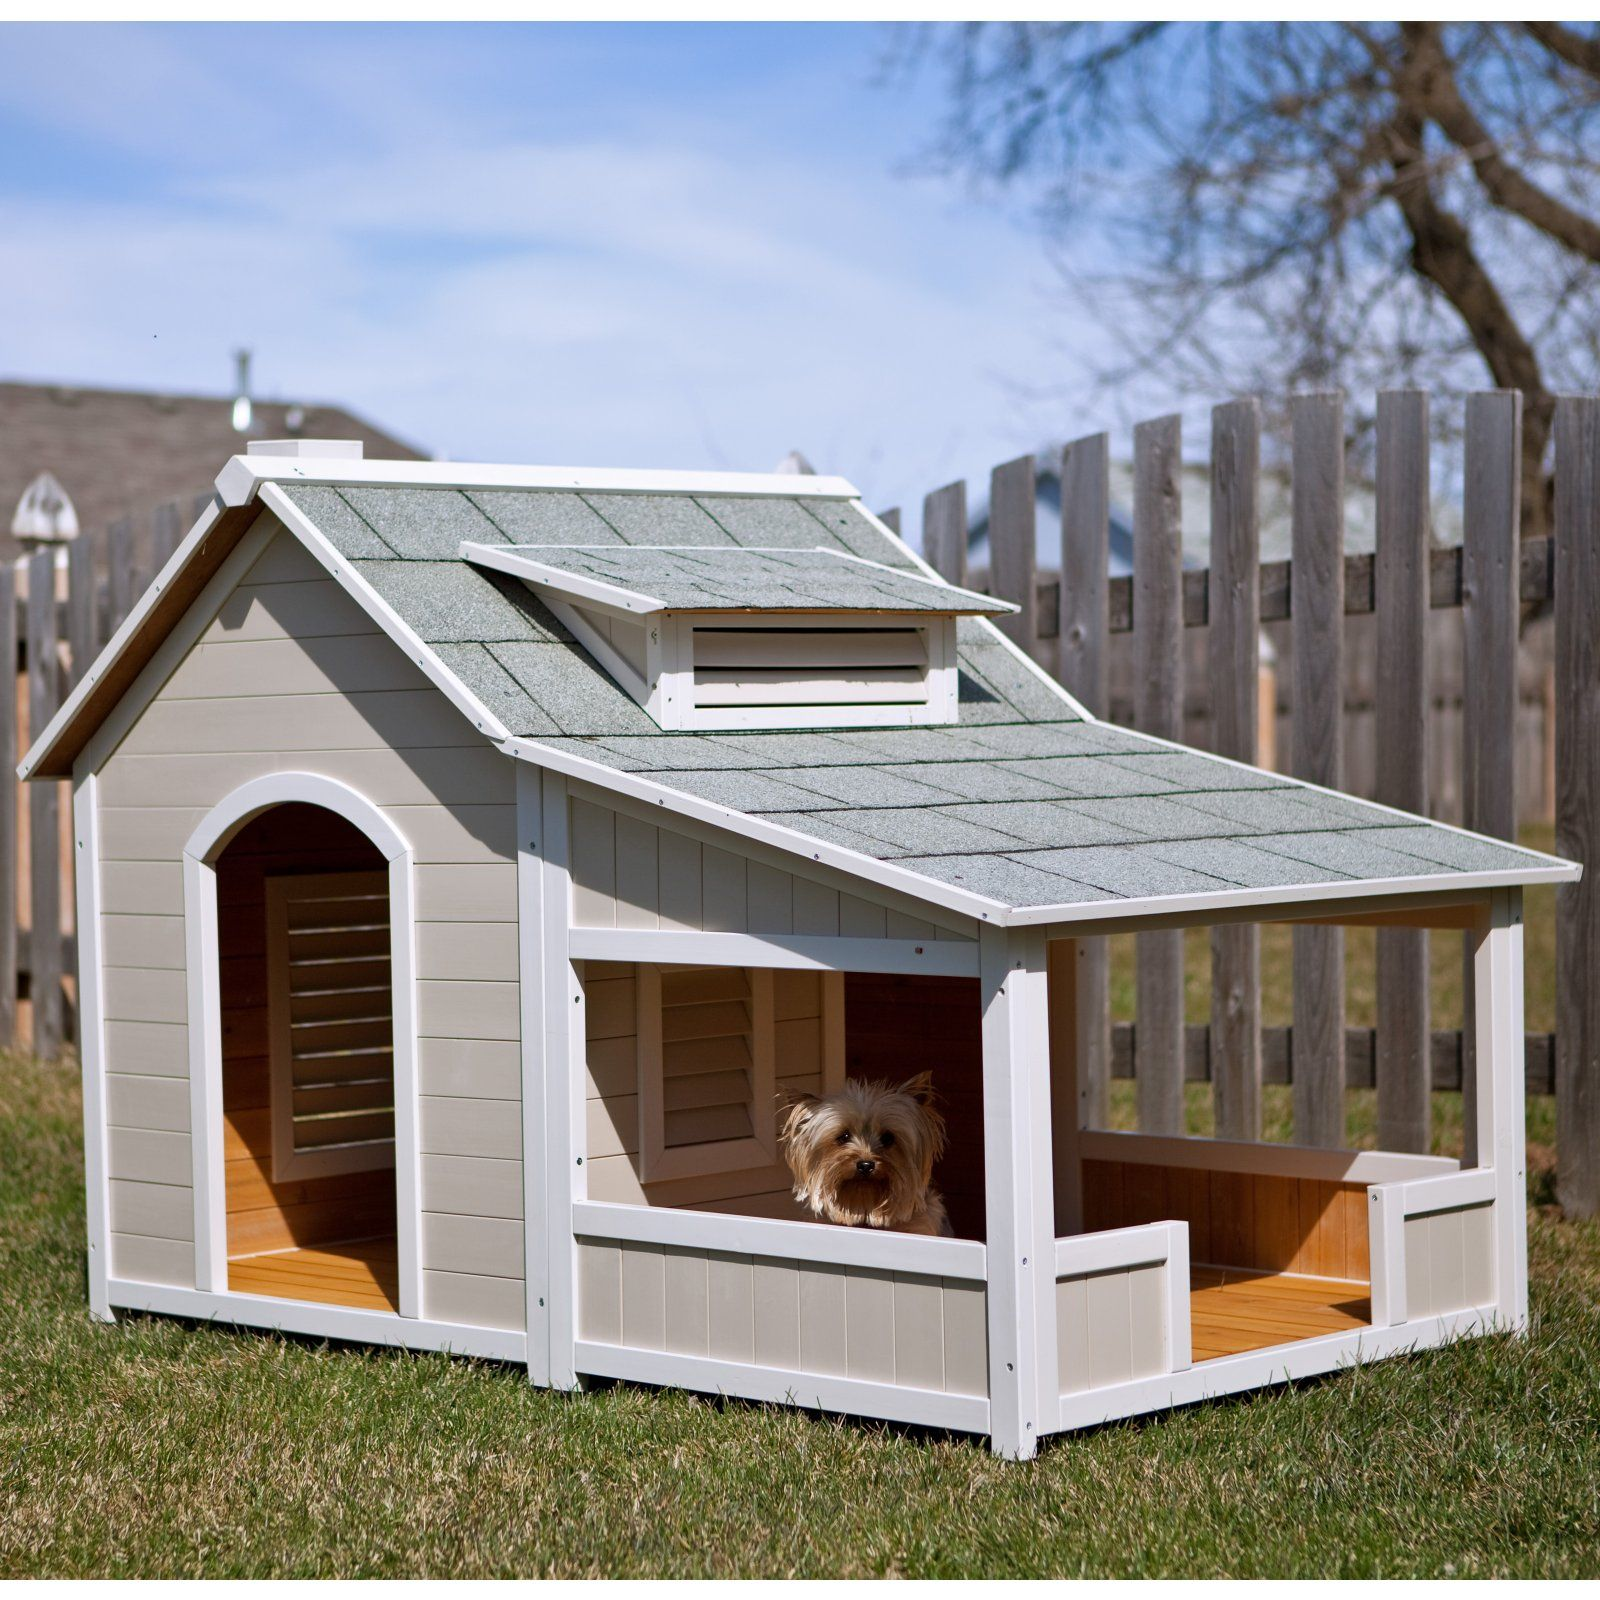 Peek Inside The Plush Pads Of The World S Most Privileged Pups Cool Dog Houses Wood Dog House Dog House With Porch